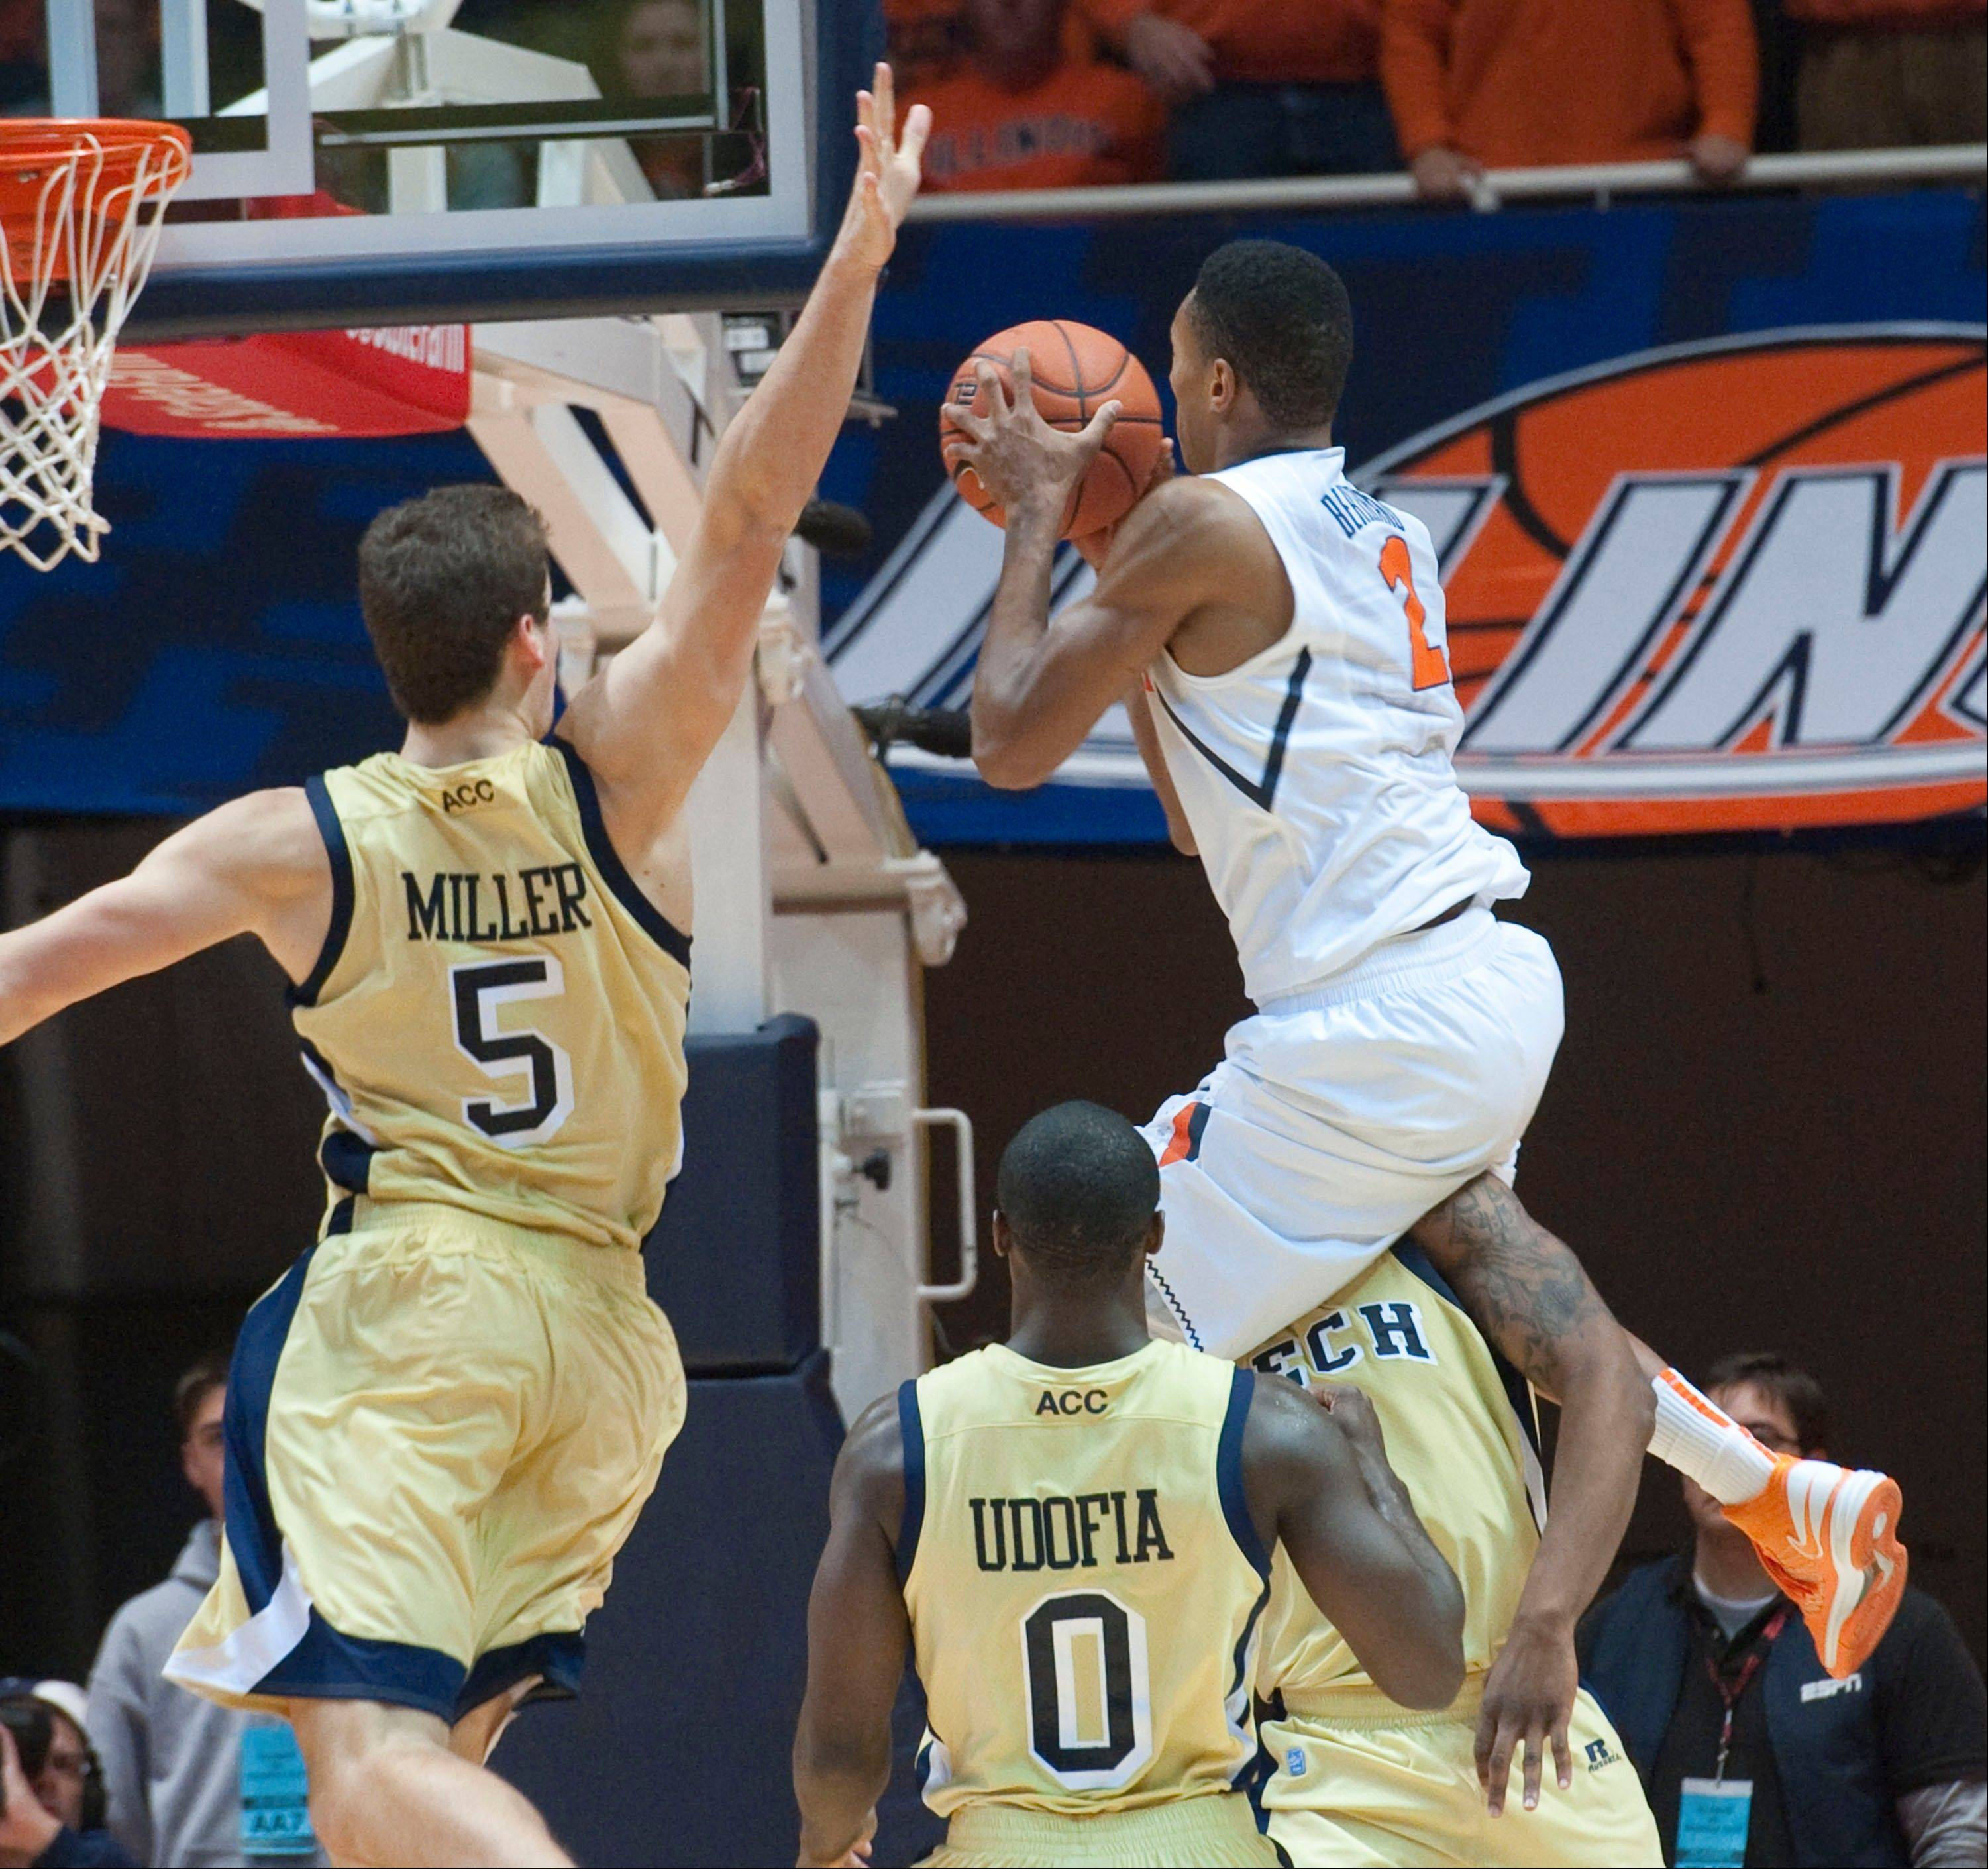 Illinois' Joseph Bertrand (2) collides with Georgia Tech Marcus Georges-Hunt (3) as Georgia Tech Daniel Miller (5) tries to block the shot Wednesday during the second half in Champaign.